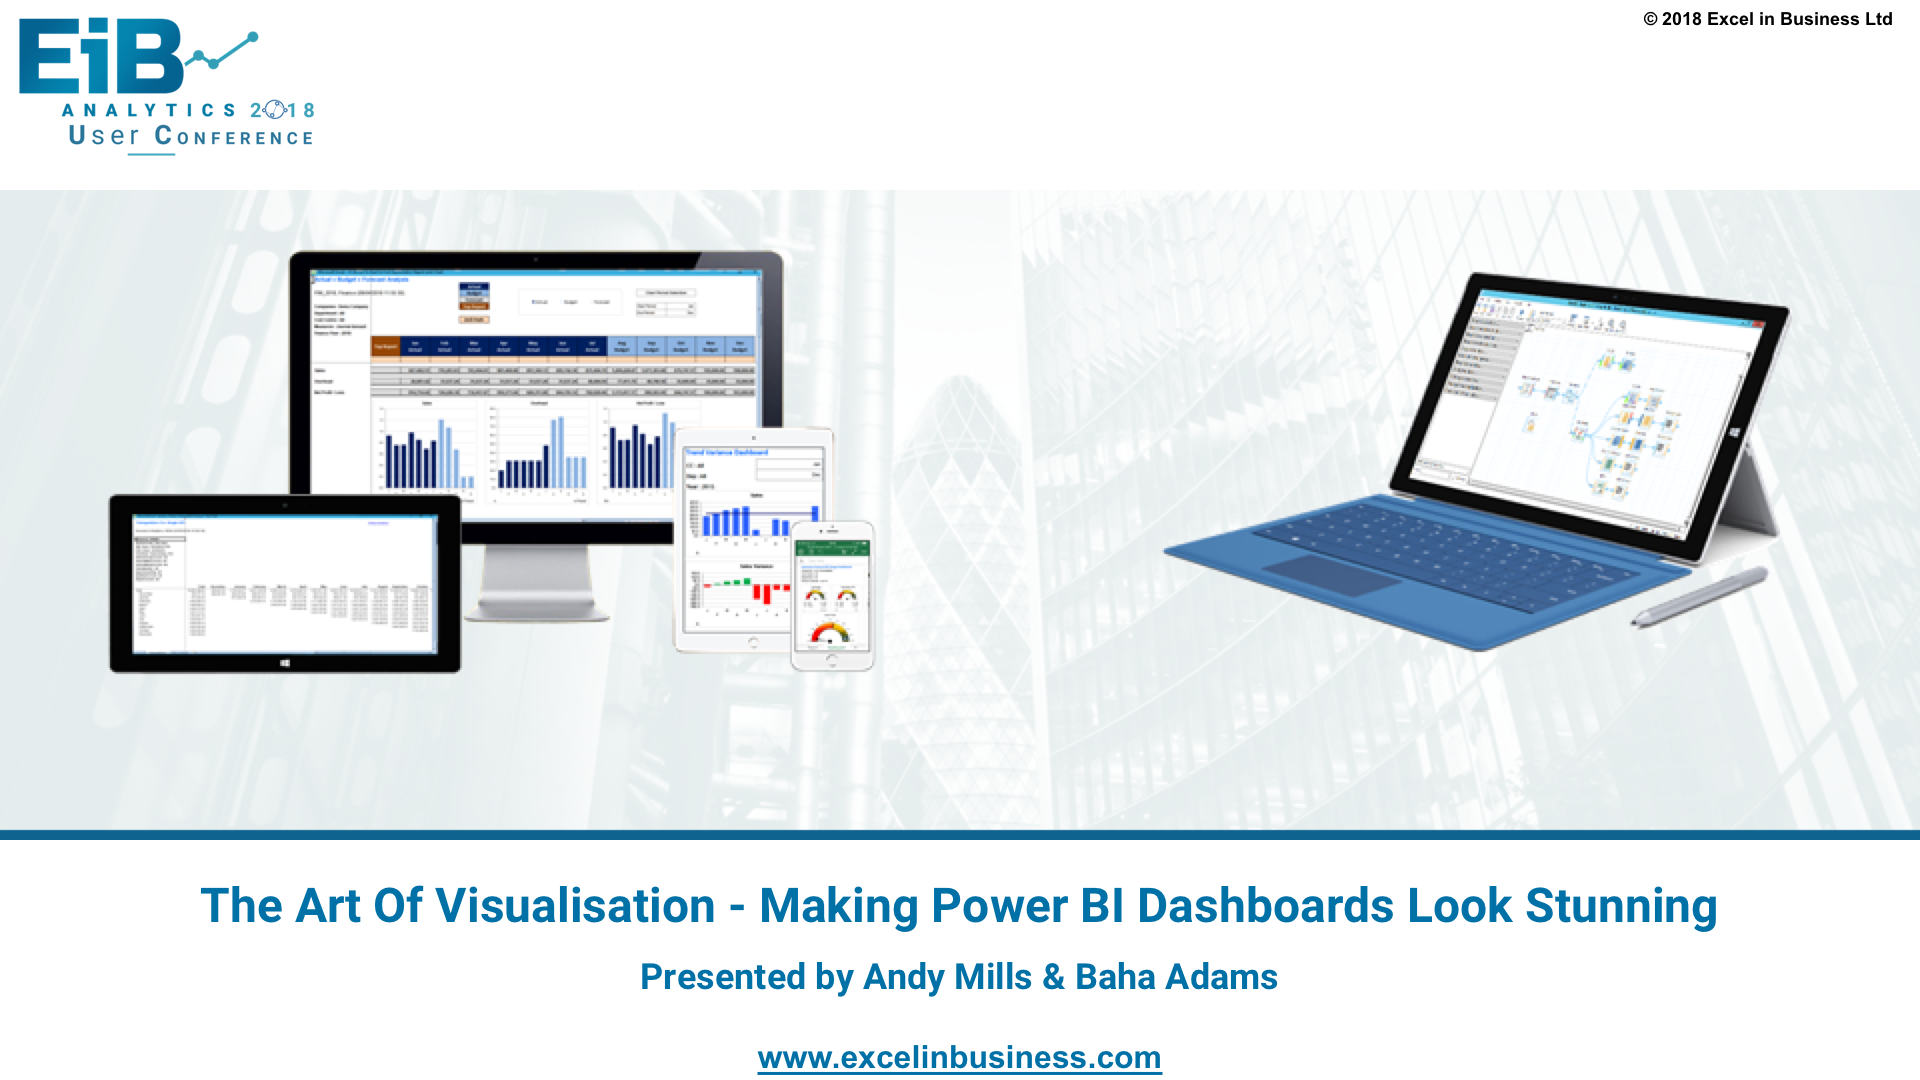 4.8 - Insurance Stream - The Art Of Visualisation - Making Power BI Dashboards Look Stunning - Andy Mills & Baha Adams